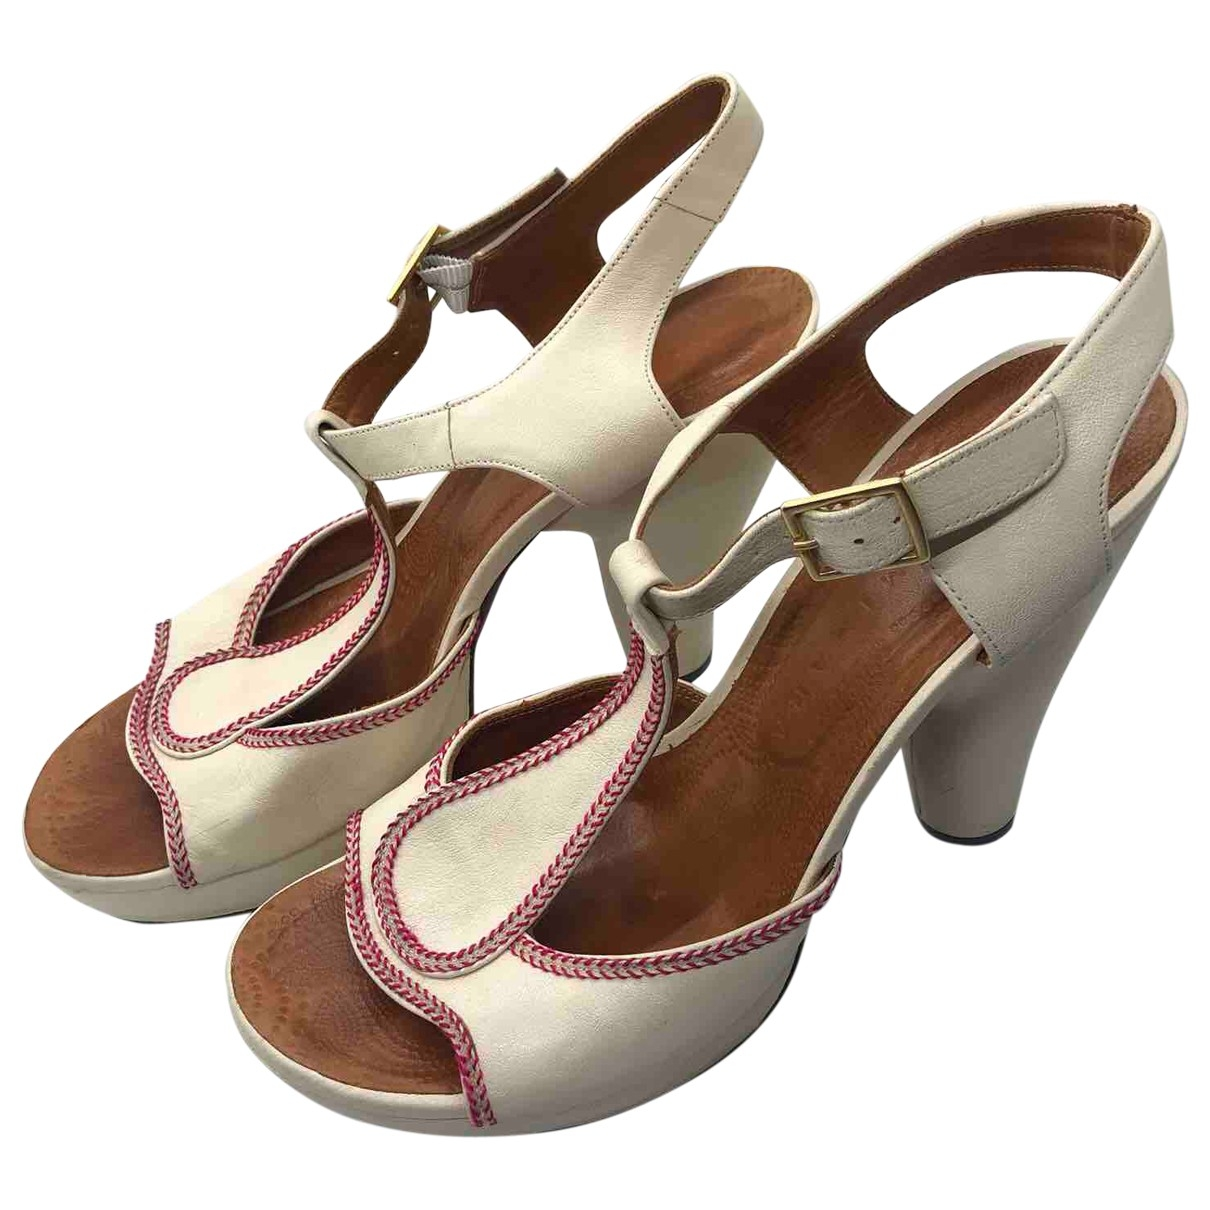 Chie Mihara \N White Leather Heels for Women 40 EU